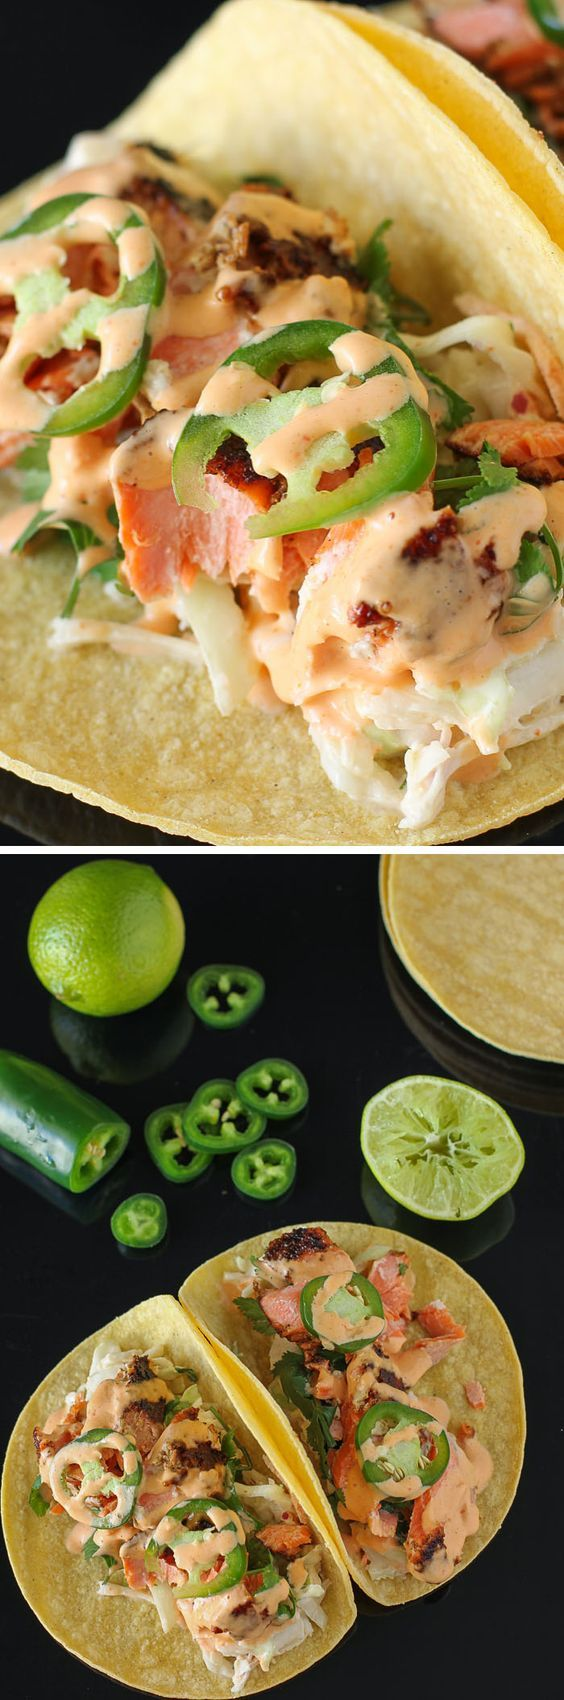 Salmon Tacos with Cilantro-Lime Slaw: a delicious, quick, and simple (low-carb!) weeknight dinner recipe.